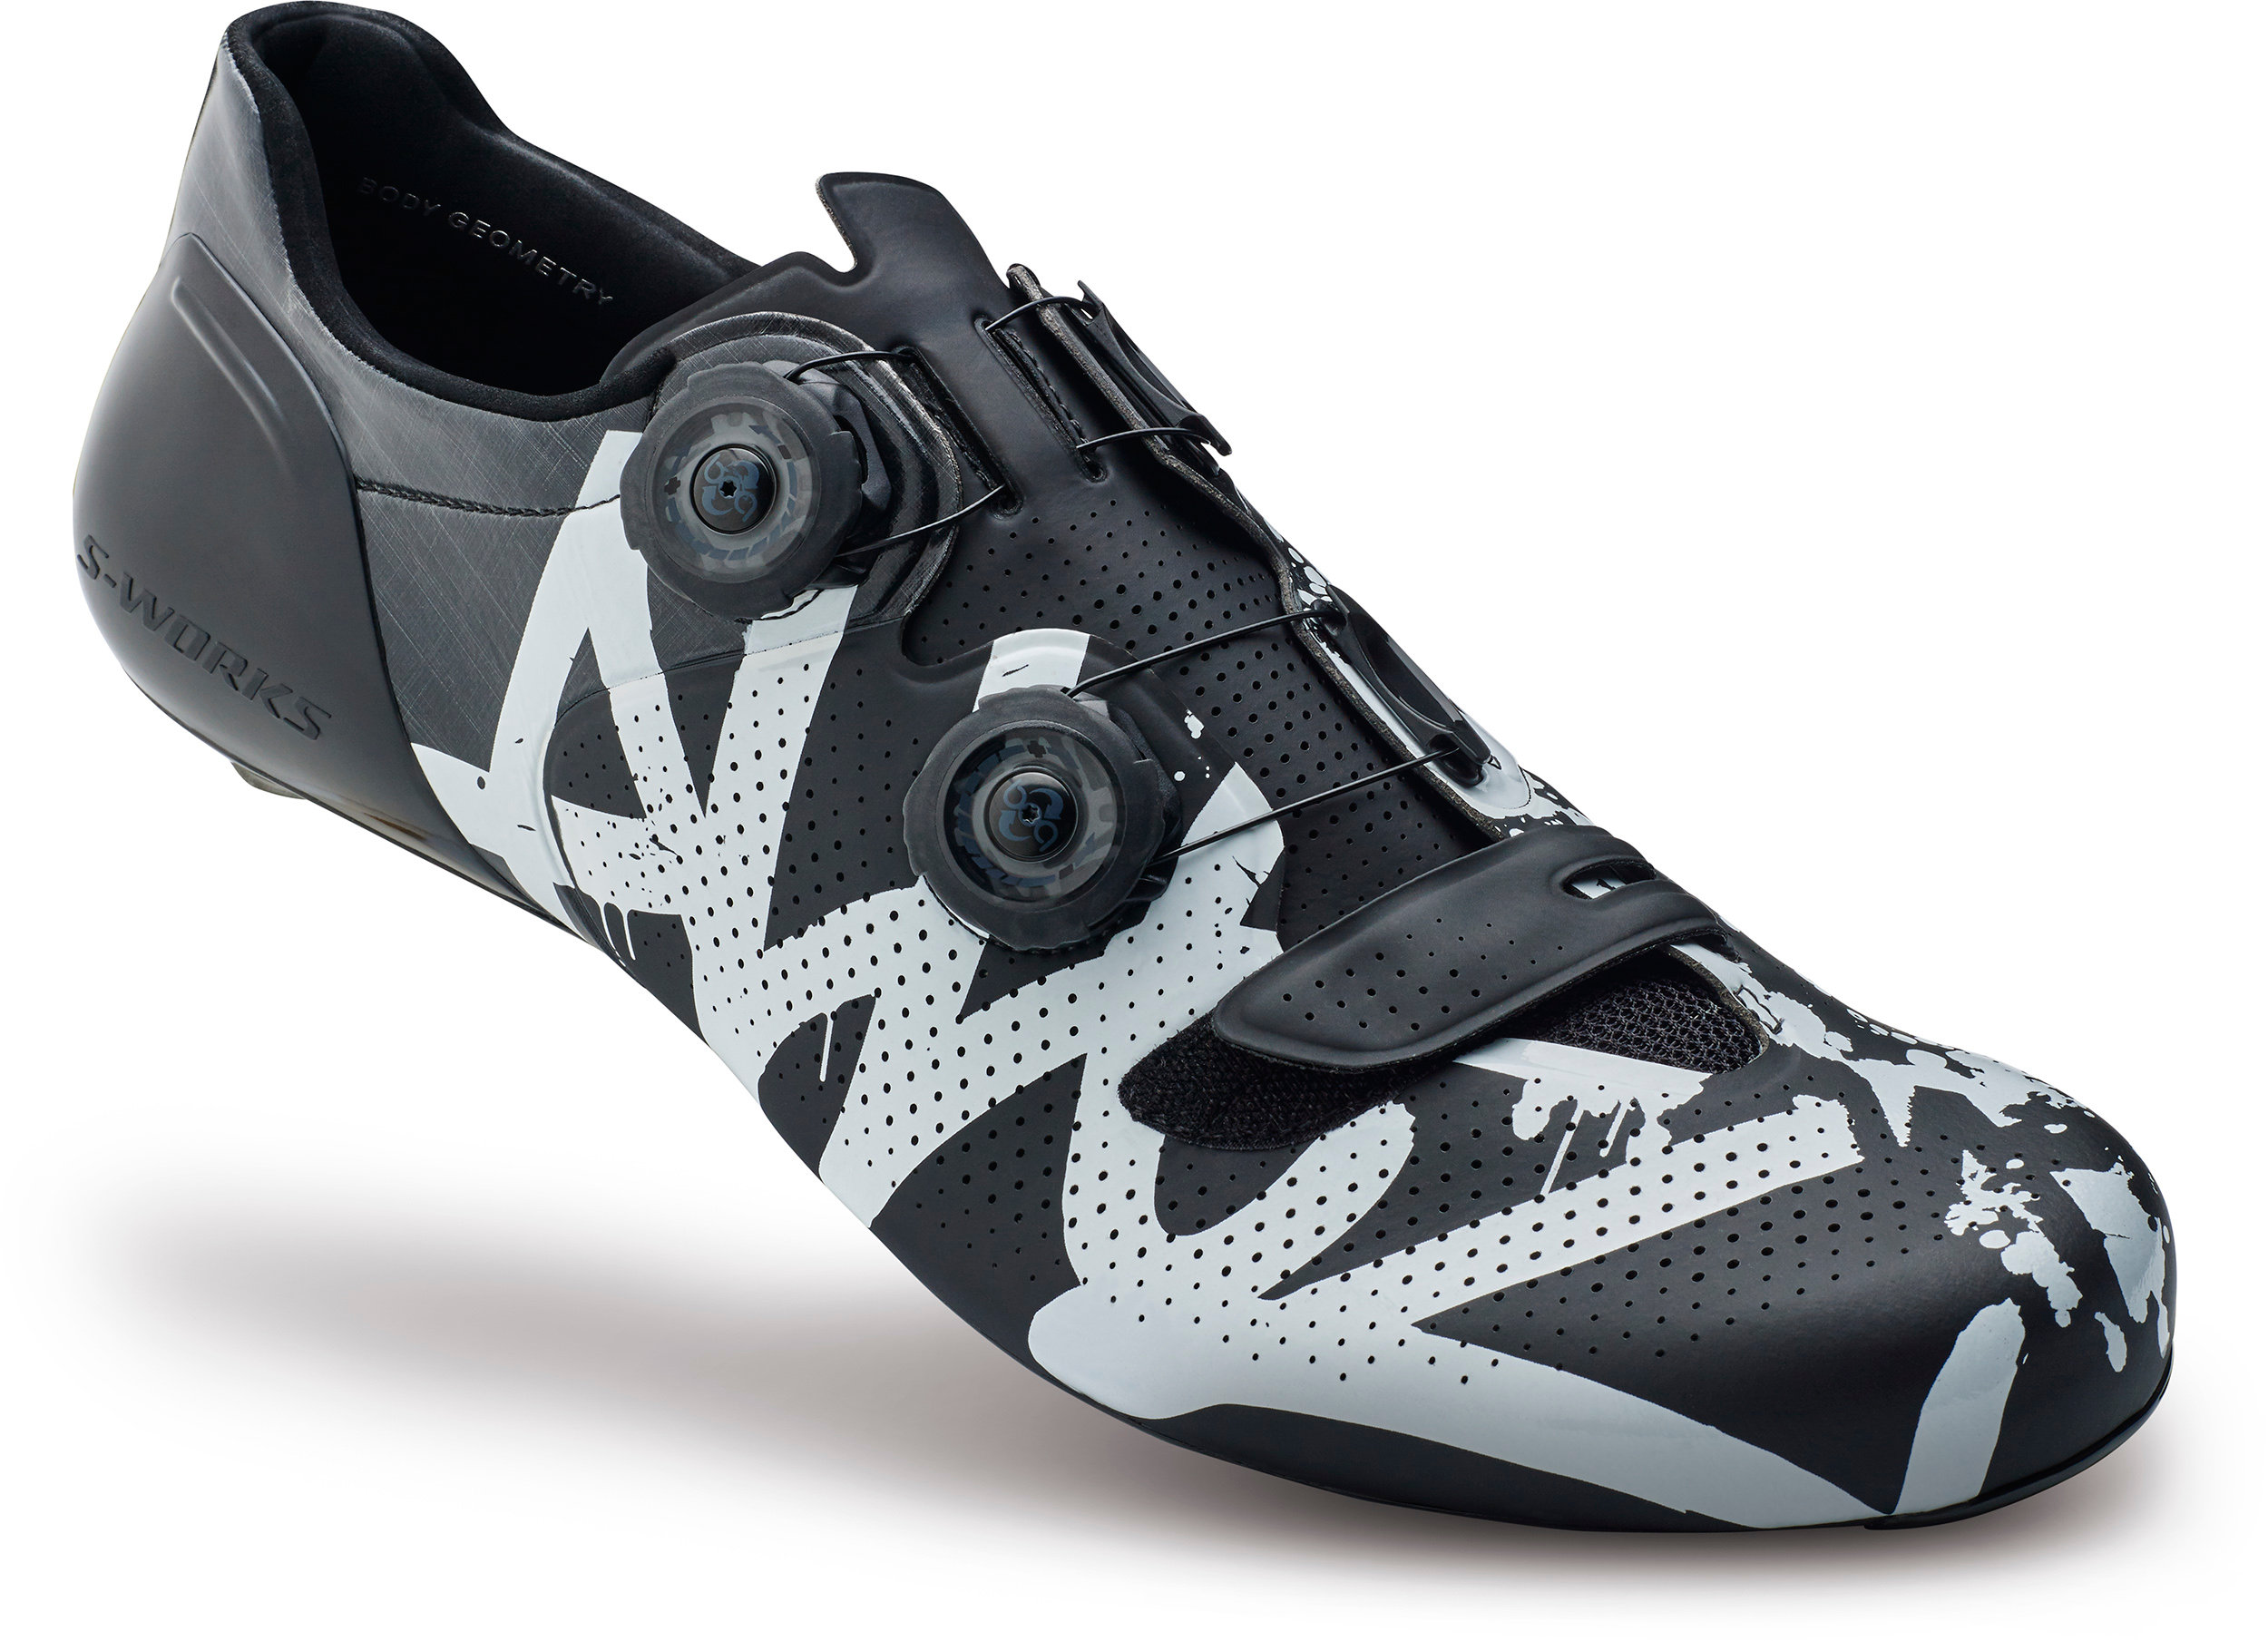 SPECIALIZED SW 6 RD SHOE ALLEZ 41/8M/9.5W - Bikedreams & Dustbikes